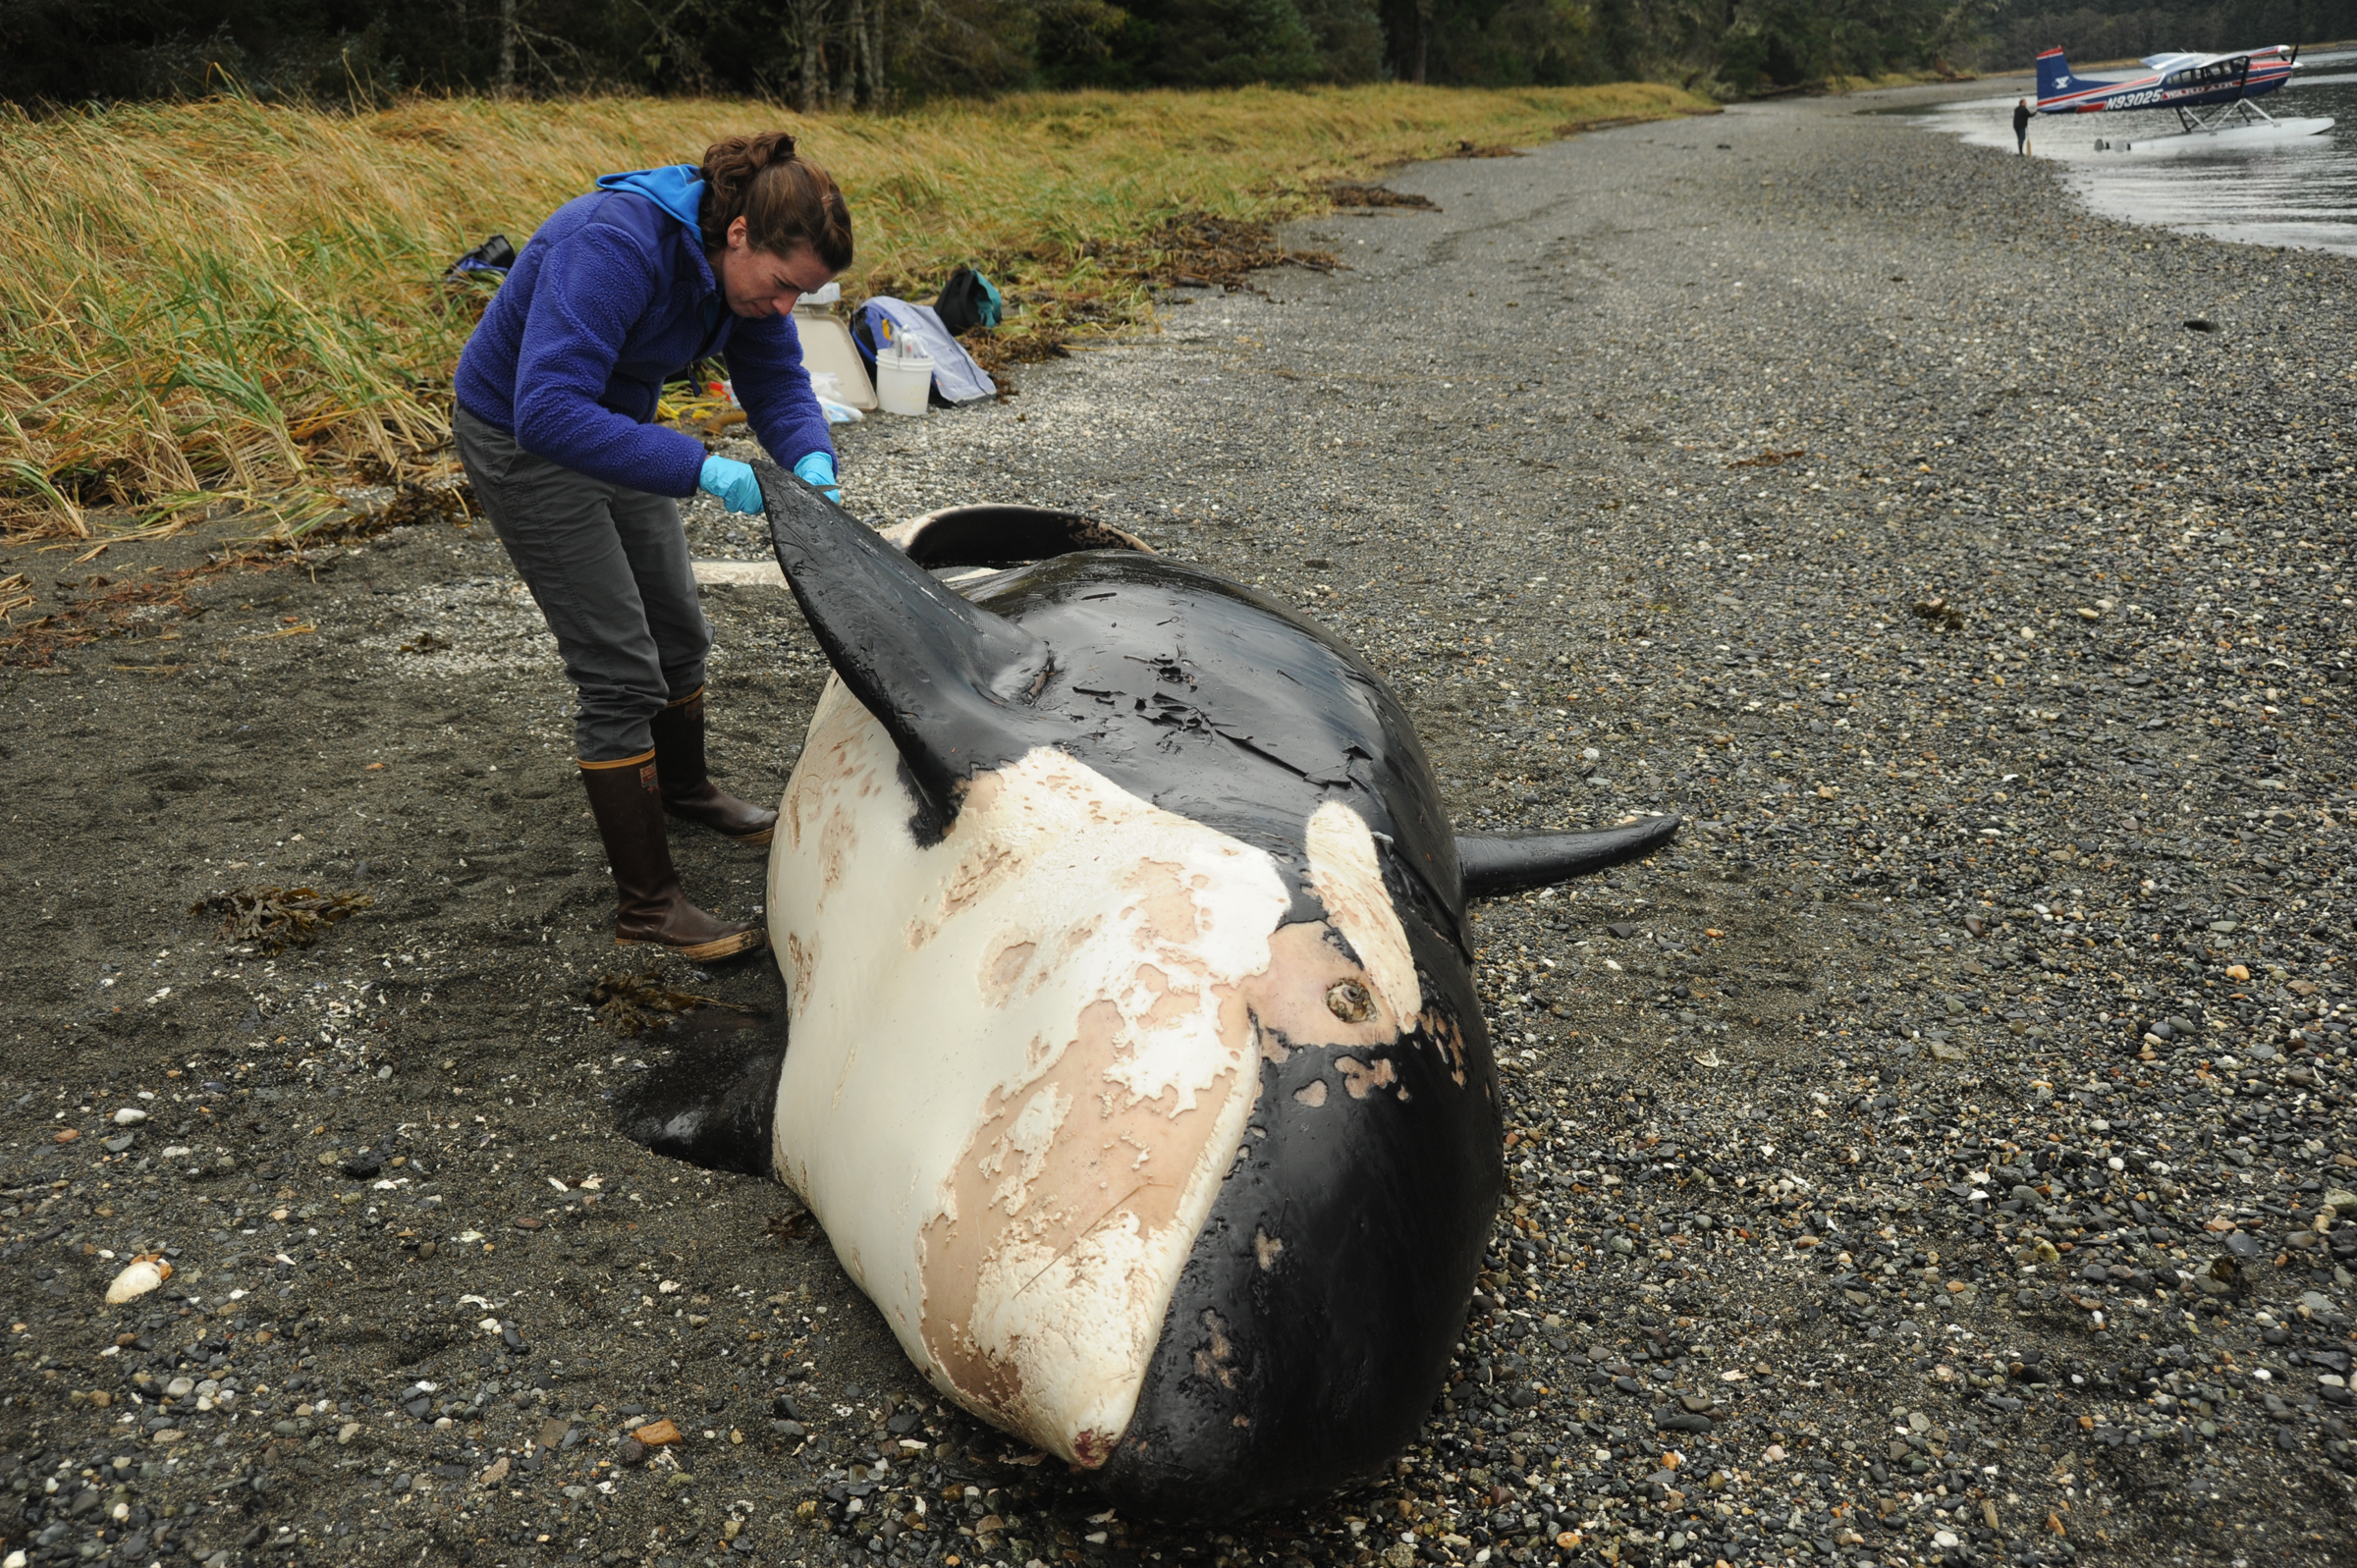 Scientists identify dead killer whale found in Southeast